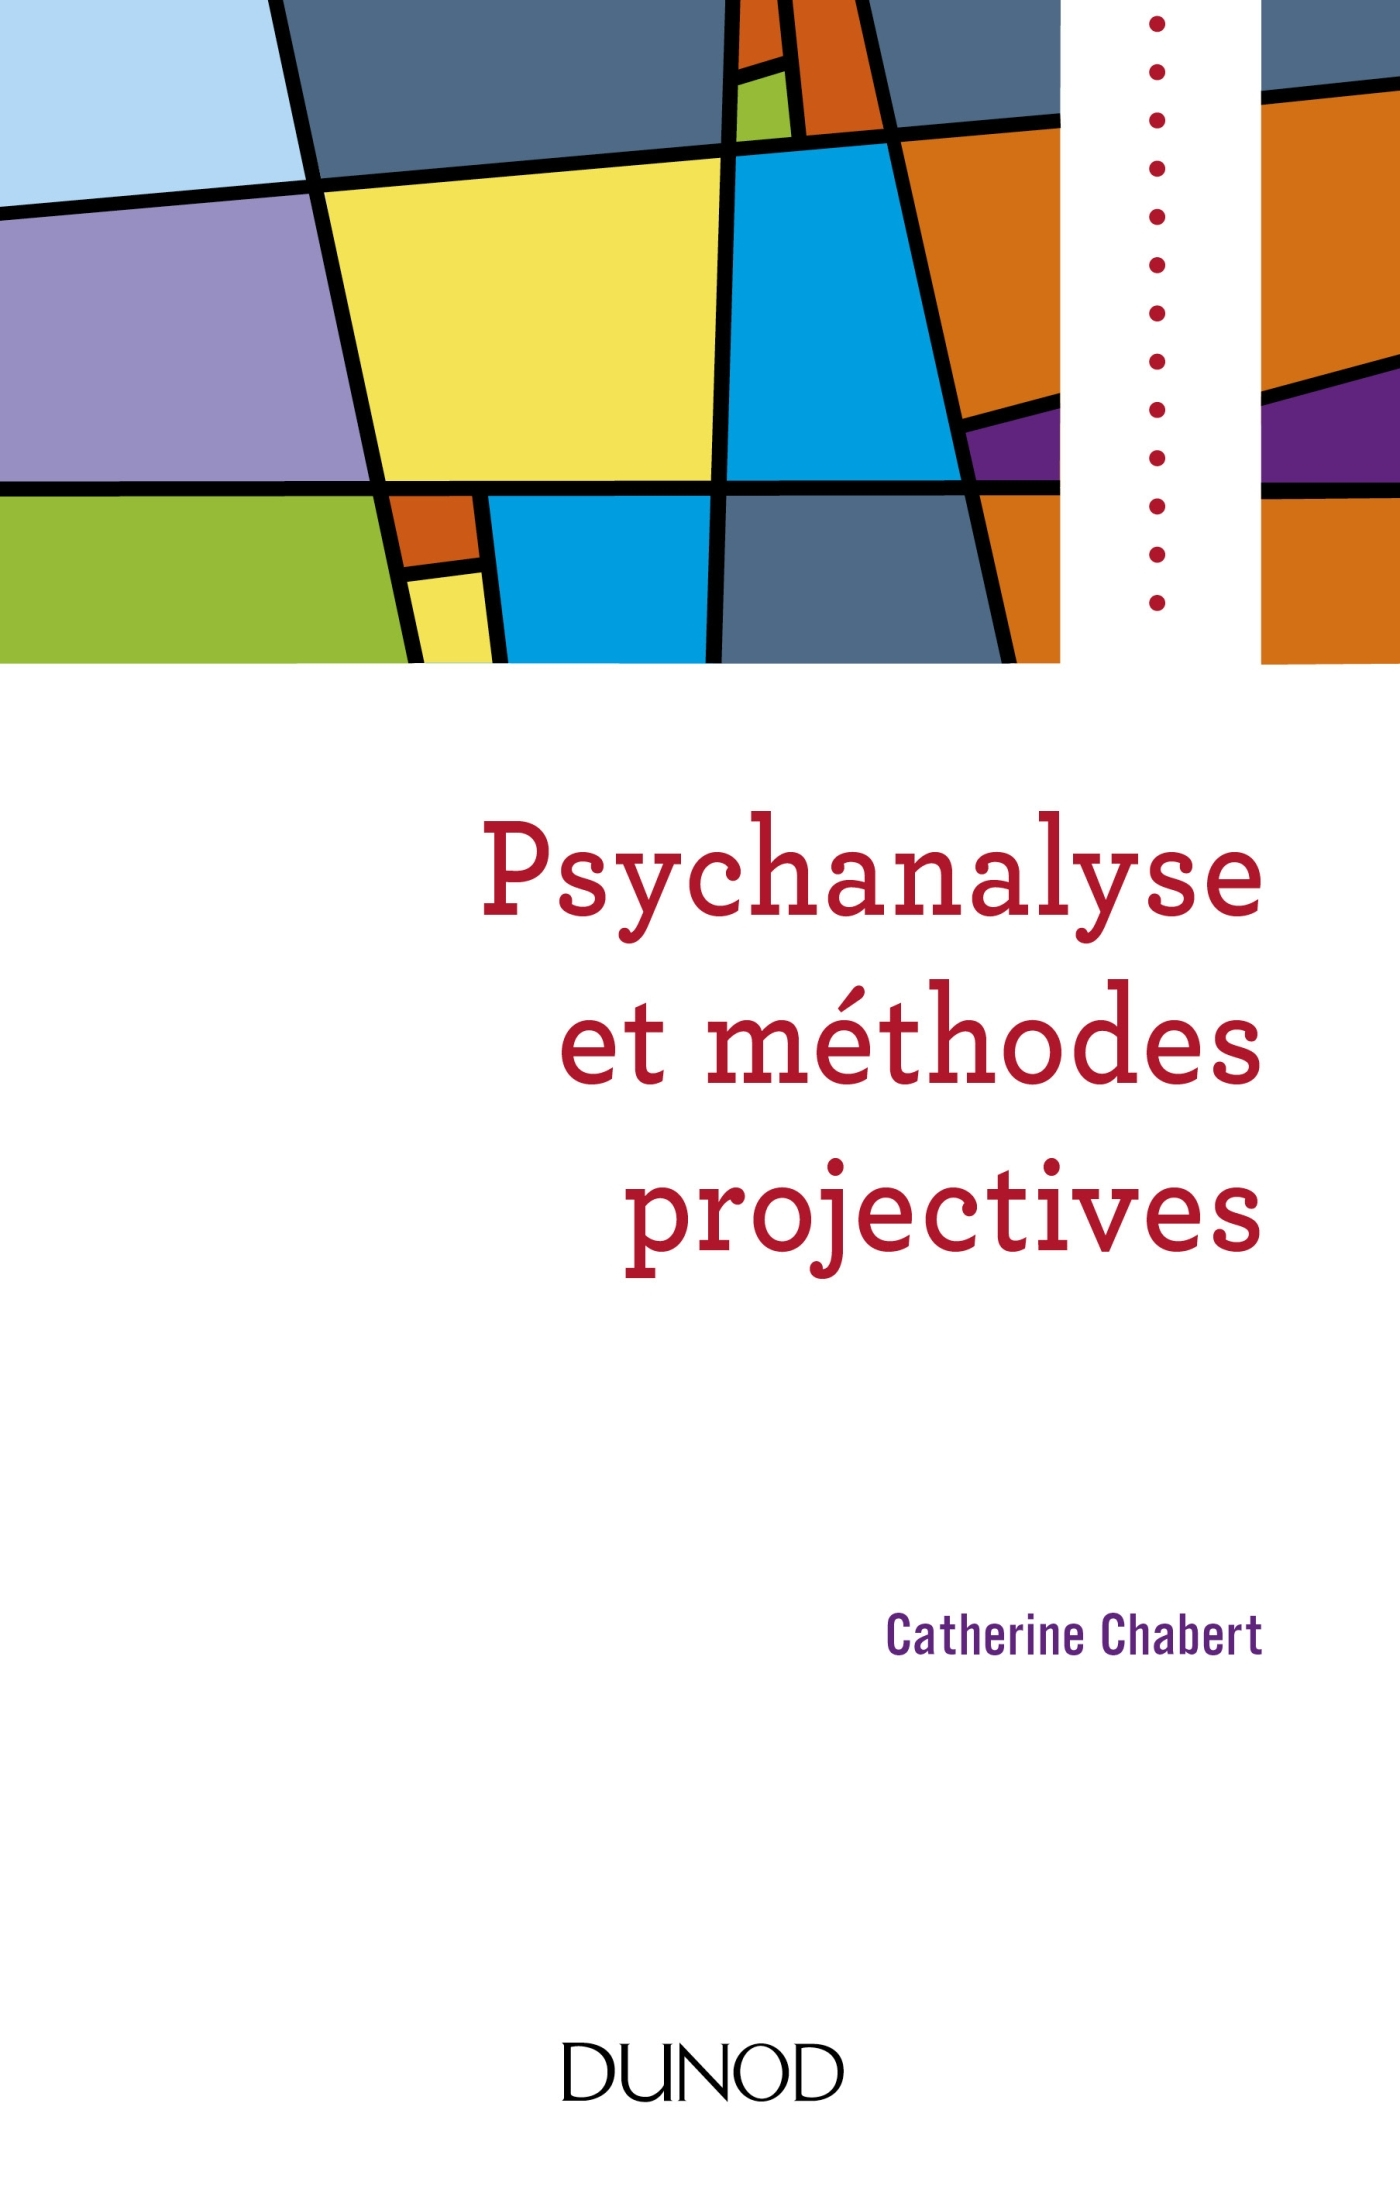 PSYCHANALYSE ET METHODES PROJECTIVES